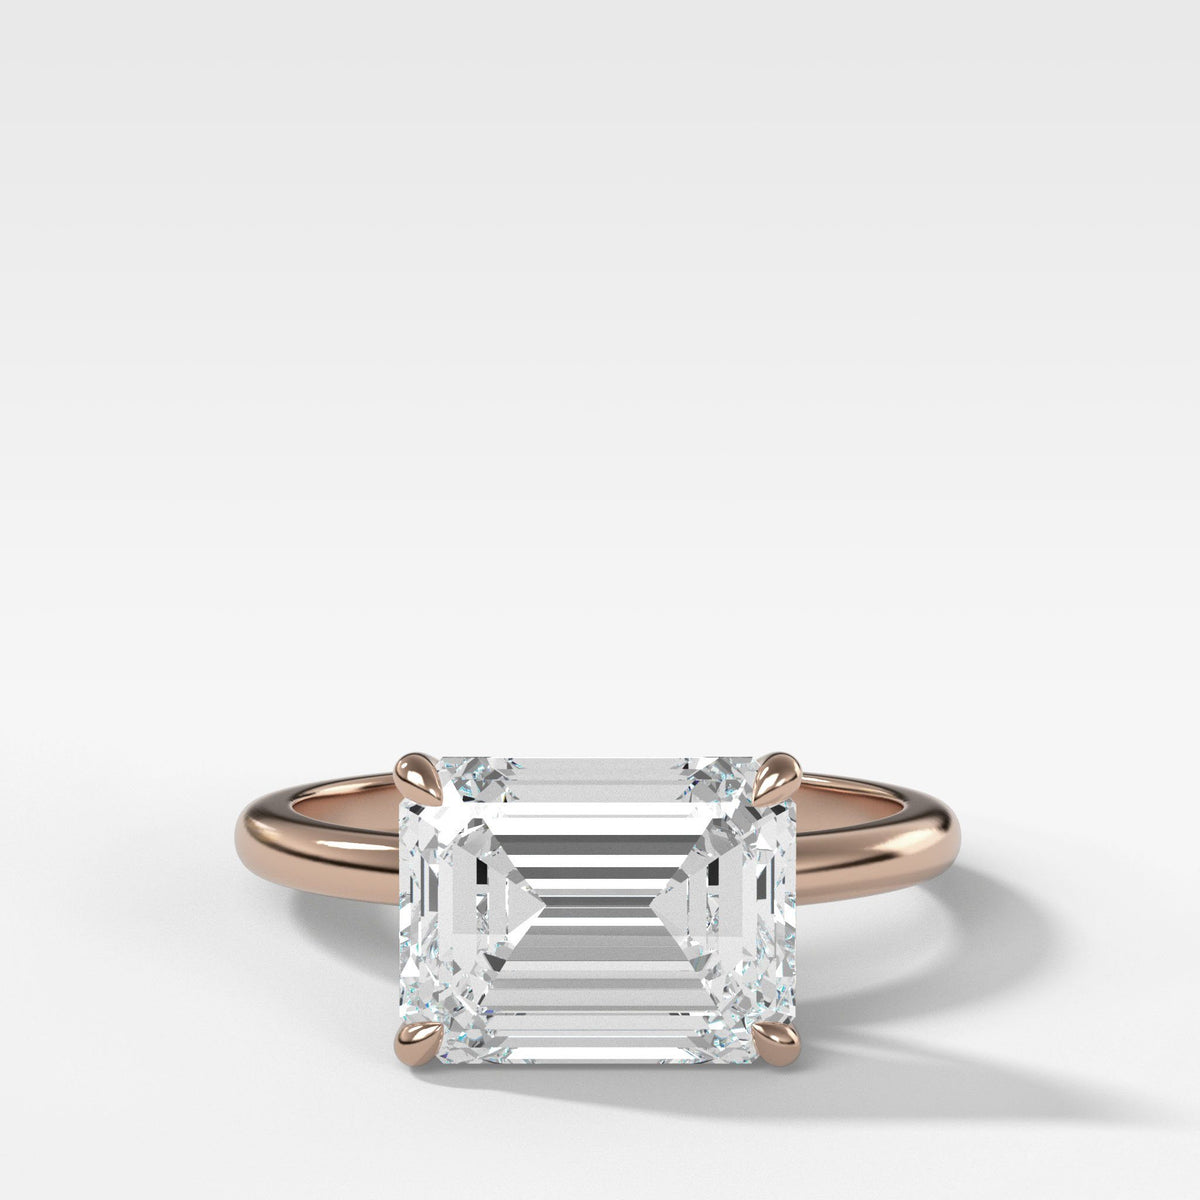 Crescent Solitaire With Emerald Cut (East West) in Rose Gold By Good Stone